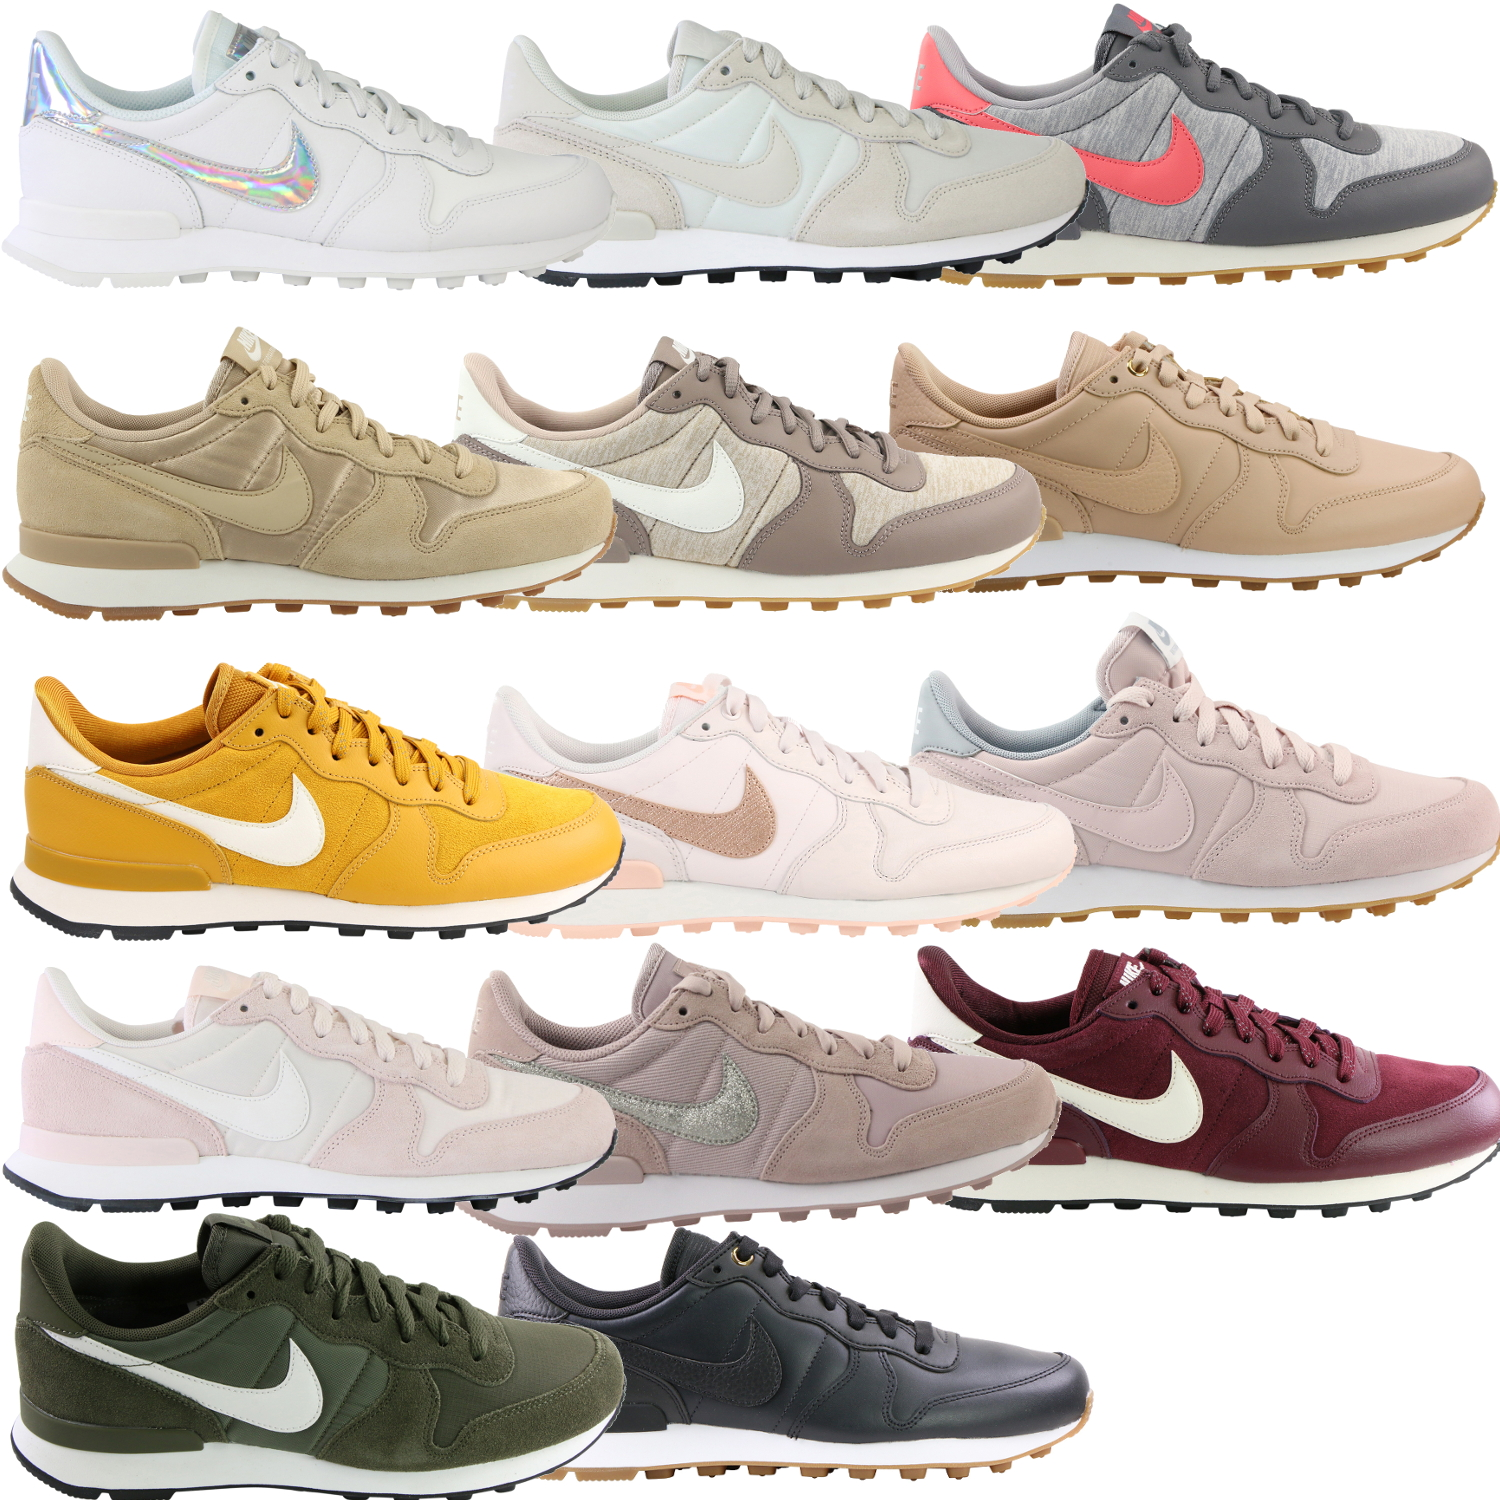 Details about Nike Internationalist SE Premium Shoes Sneaker 828407 Womens show original title